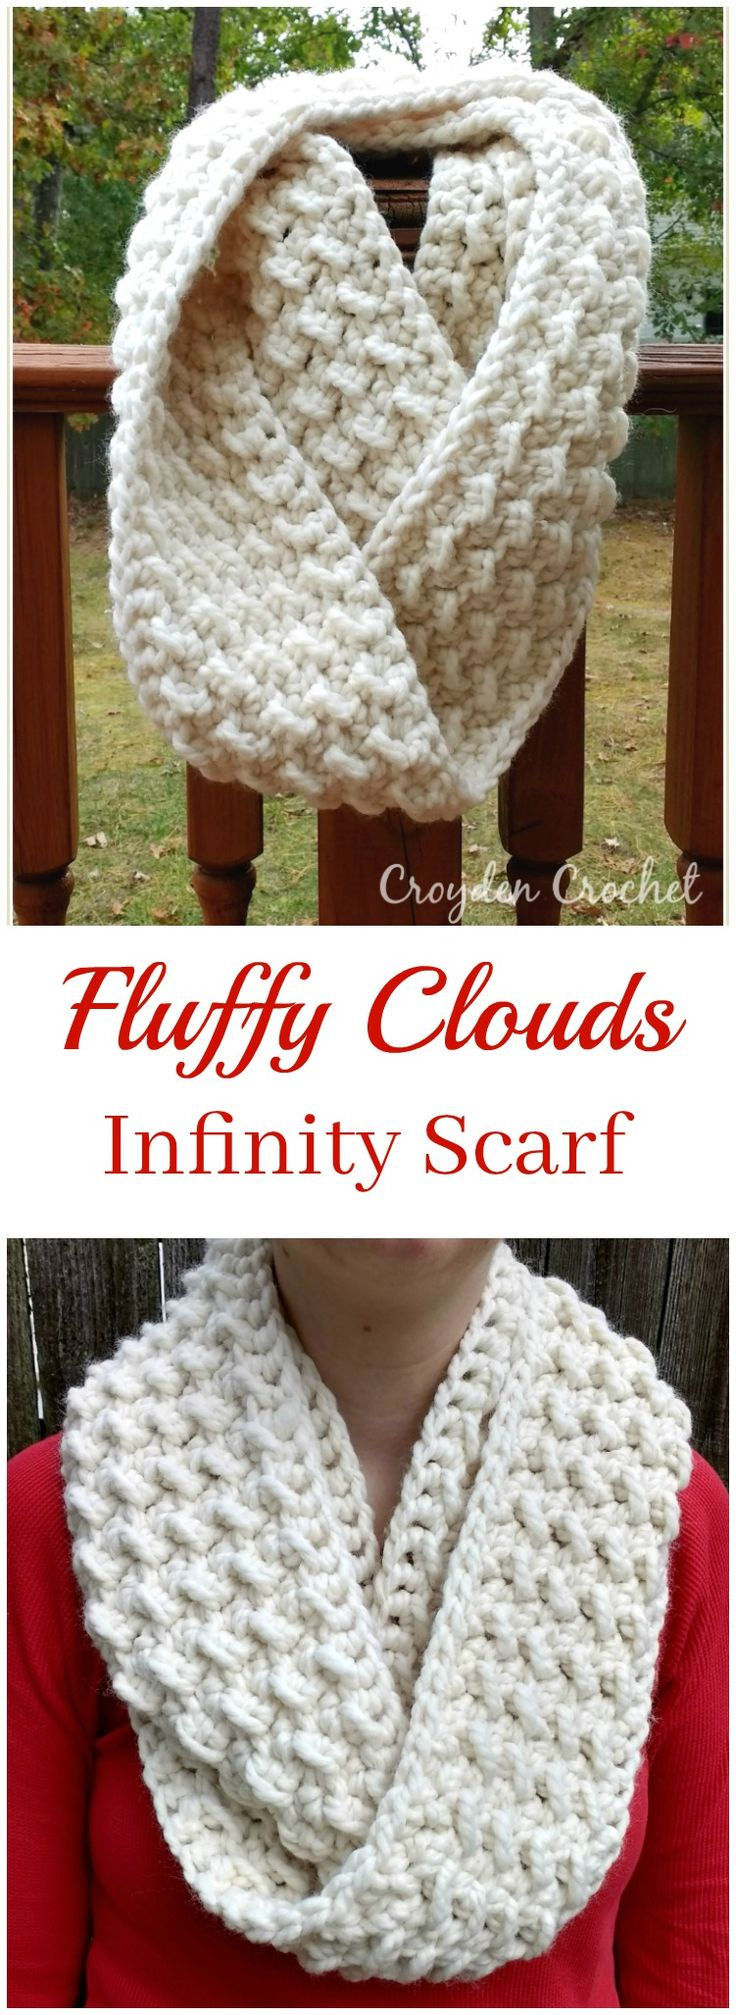 Fluffy clouds infinity scarf pattern #crochet